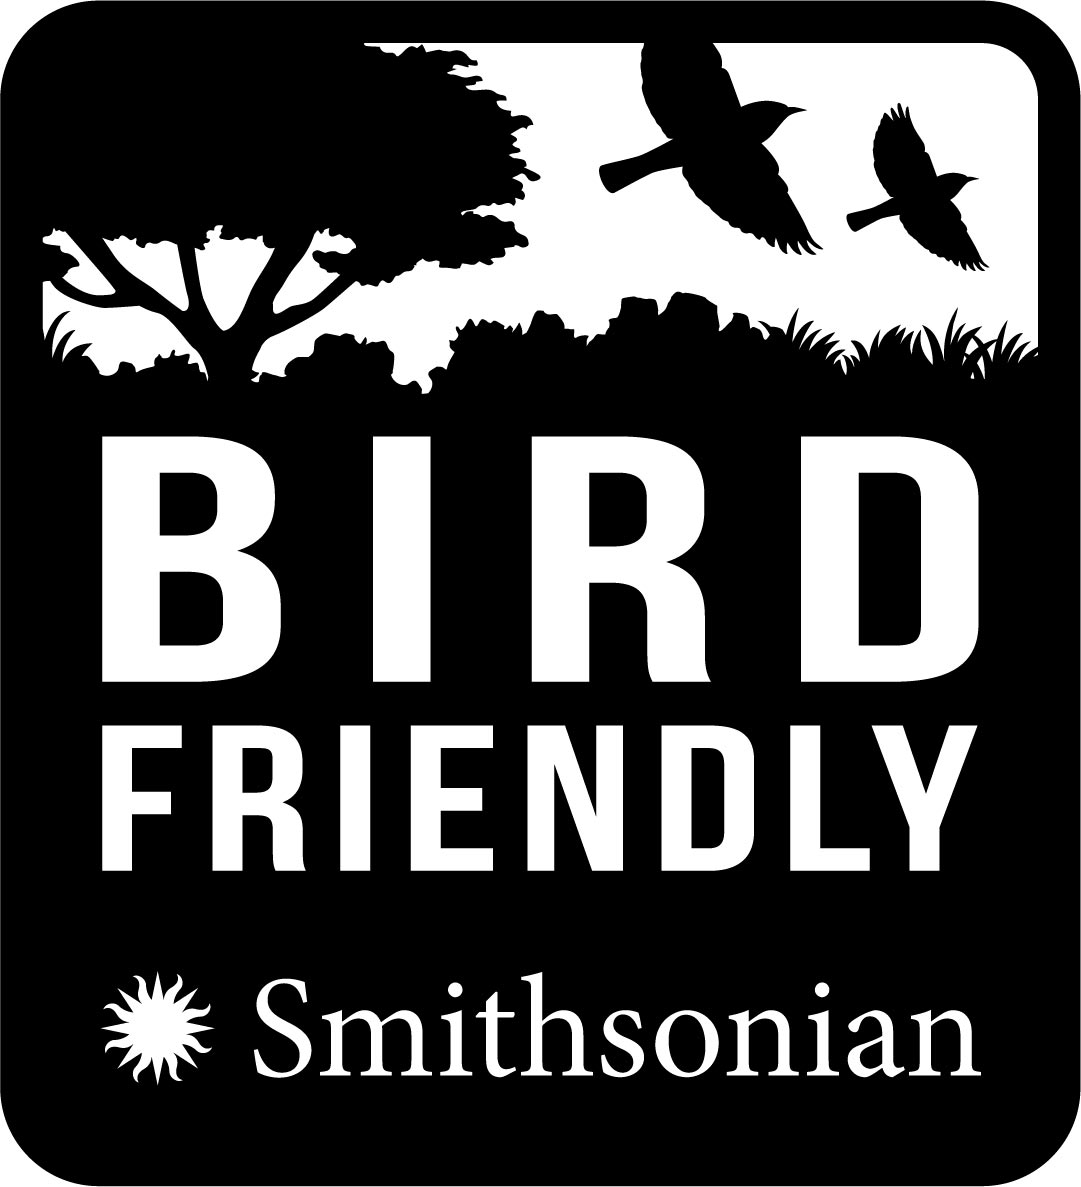 Smithsonian bird friendly coffee logo